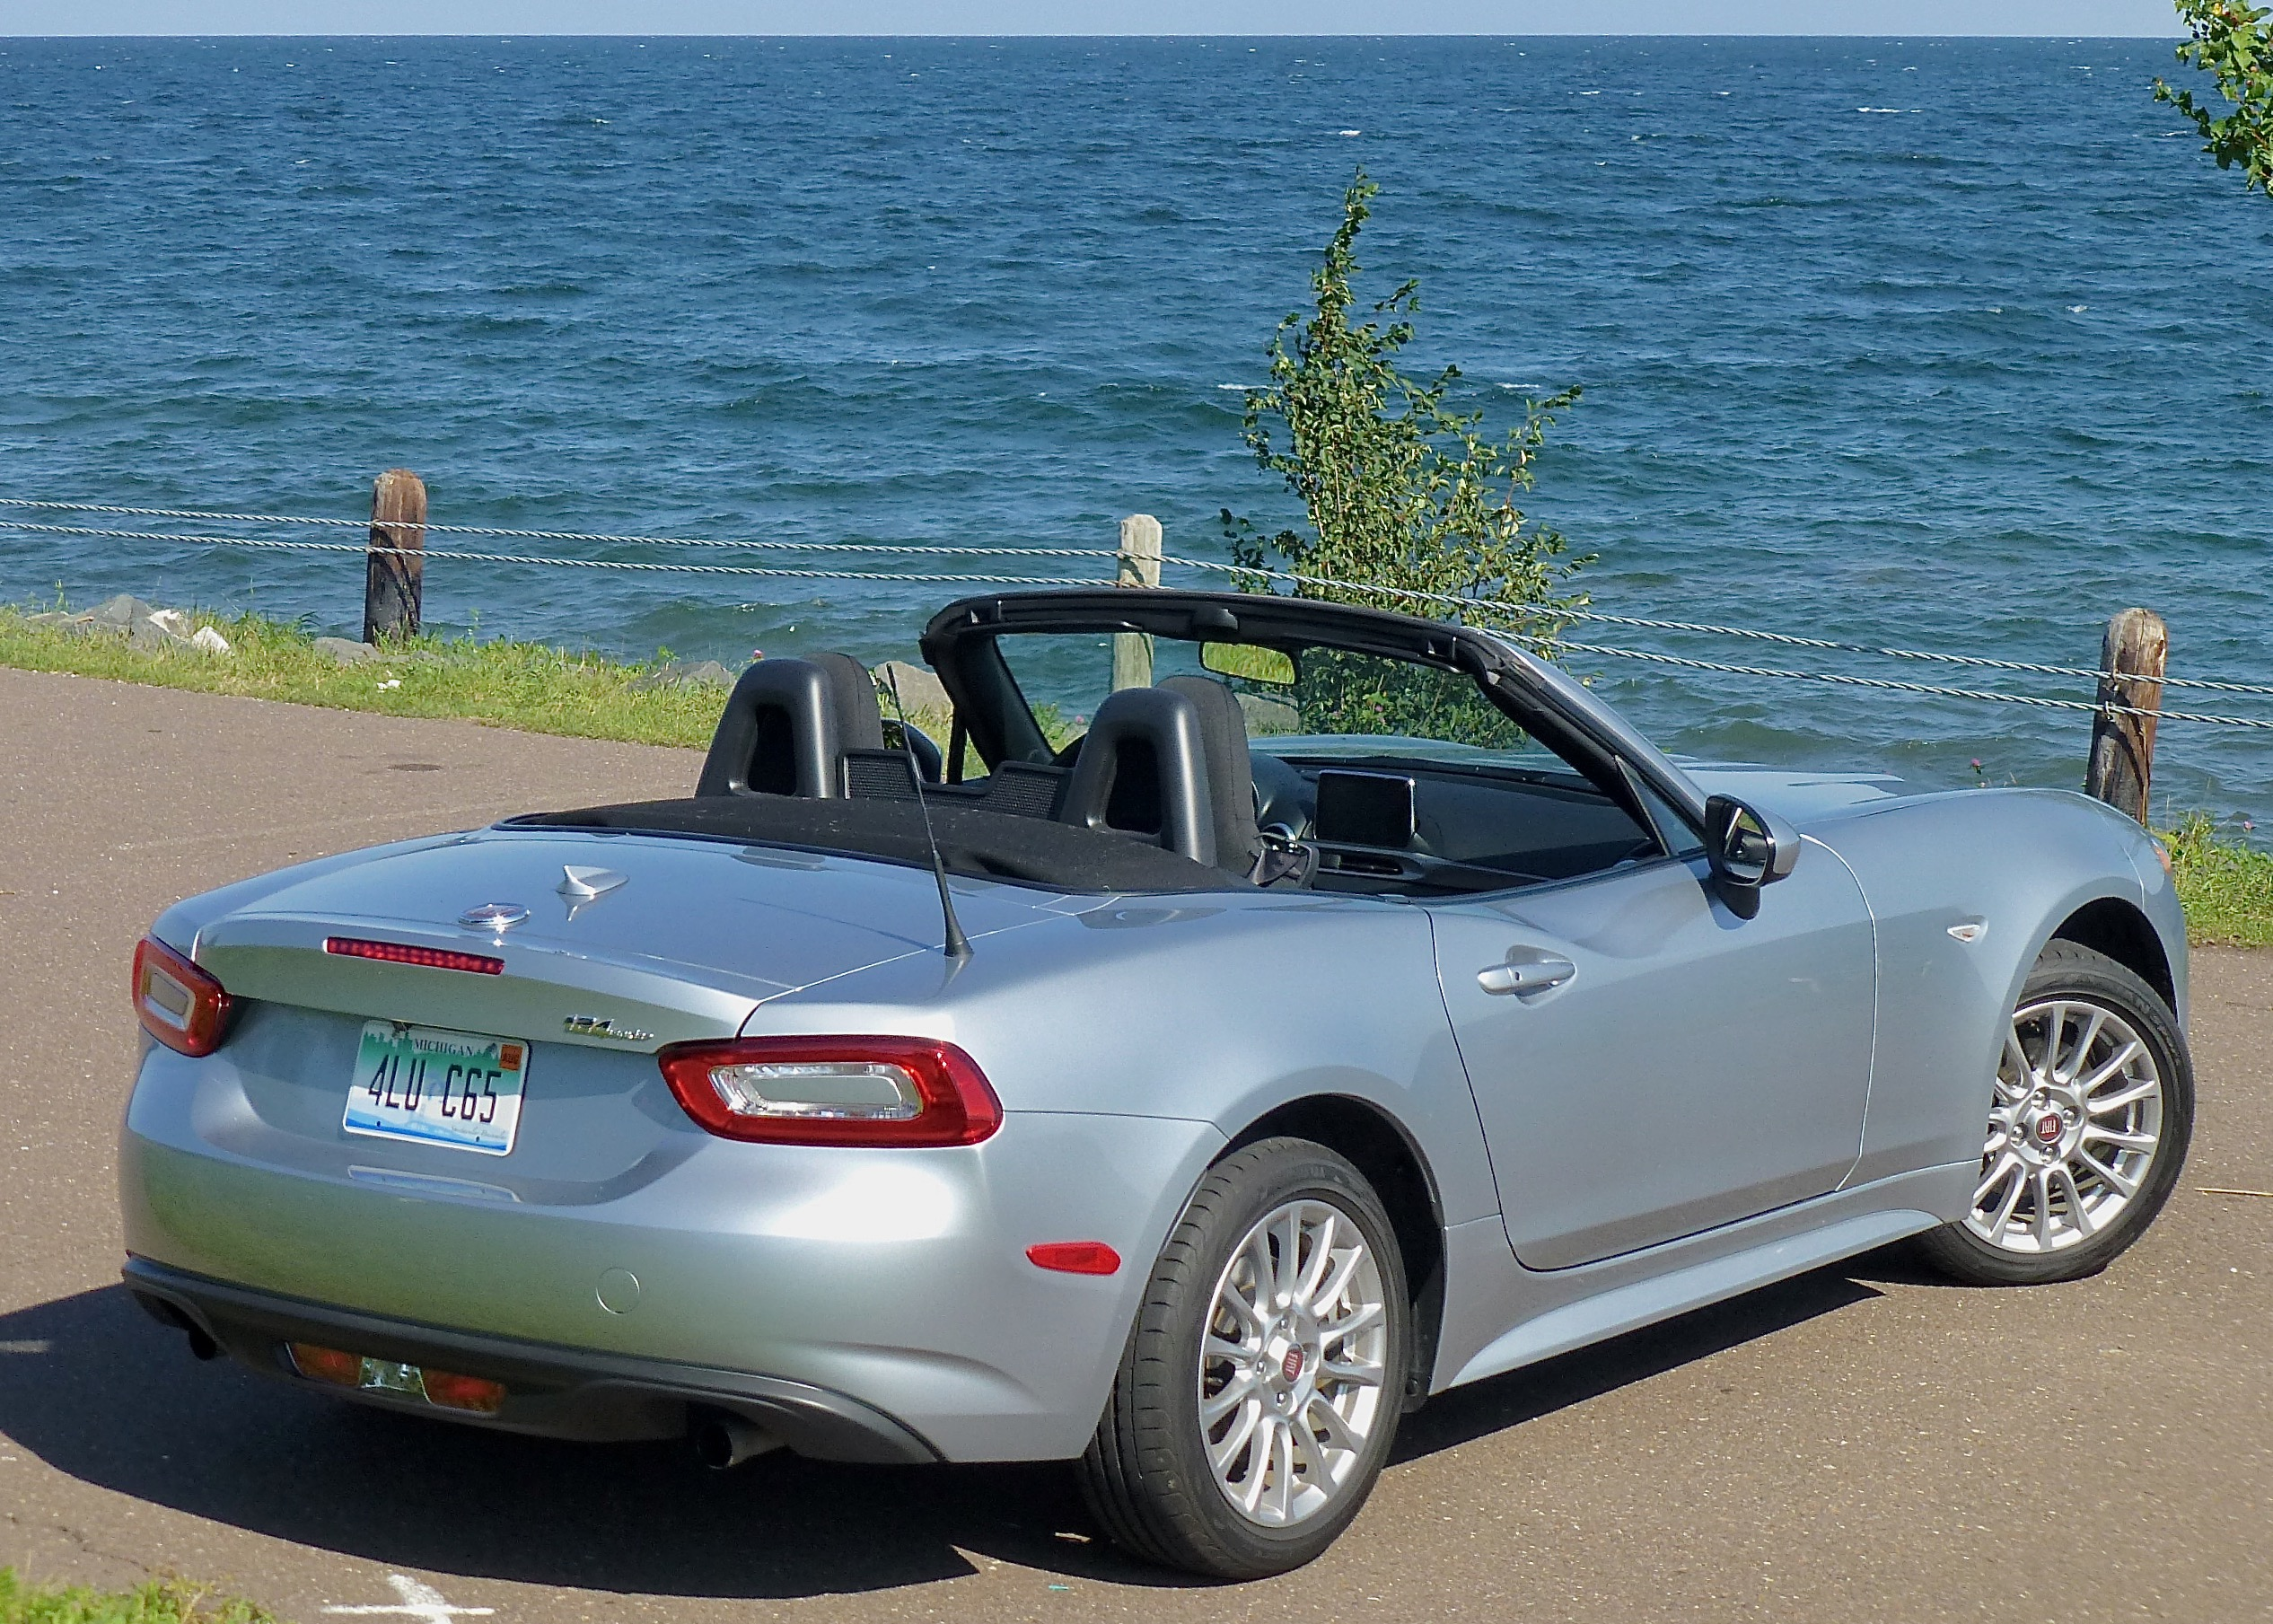 Top down, windows down, the 124 Spider can help stretch summer into fall.